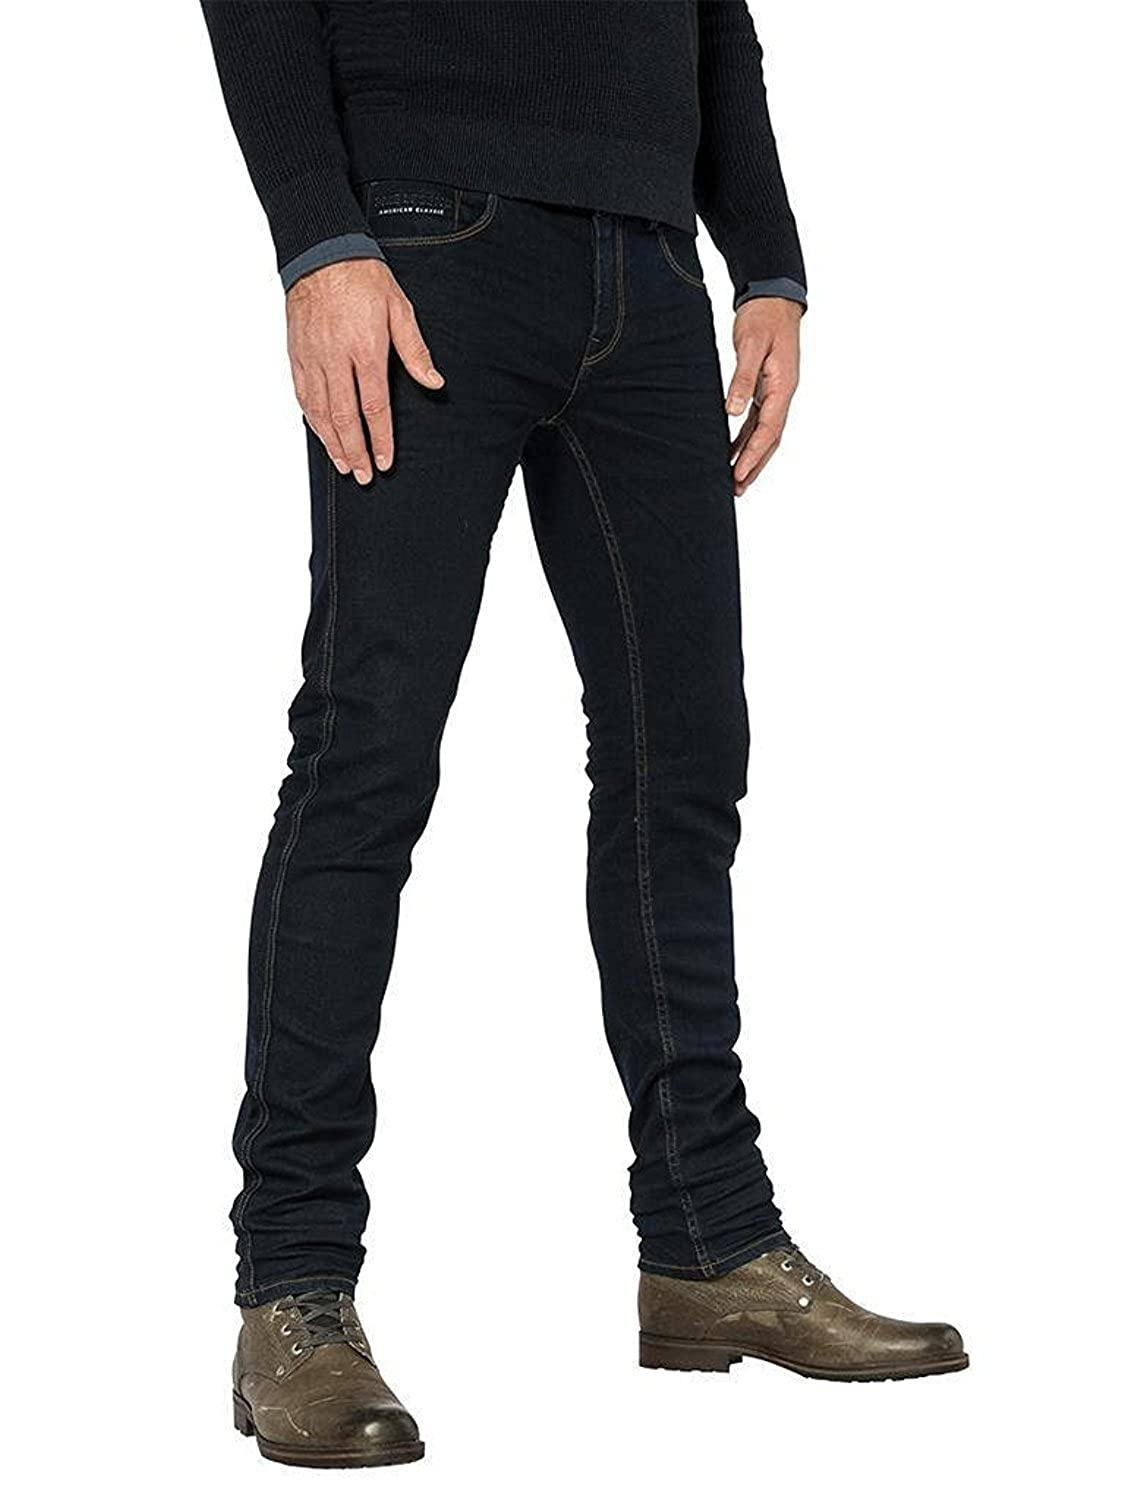 PME Legend Herren Jeans Jeans Jeans Nightflight Slim Fit B075X232VP Jeanshosen Britisches Temperament b43bc3